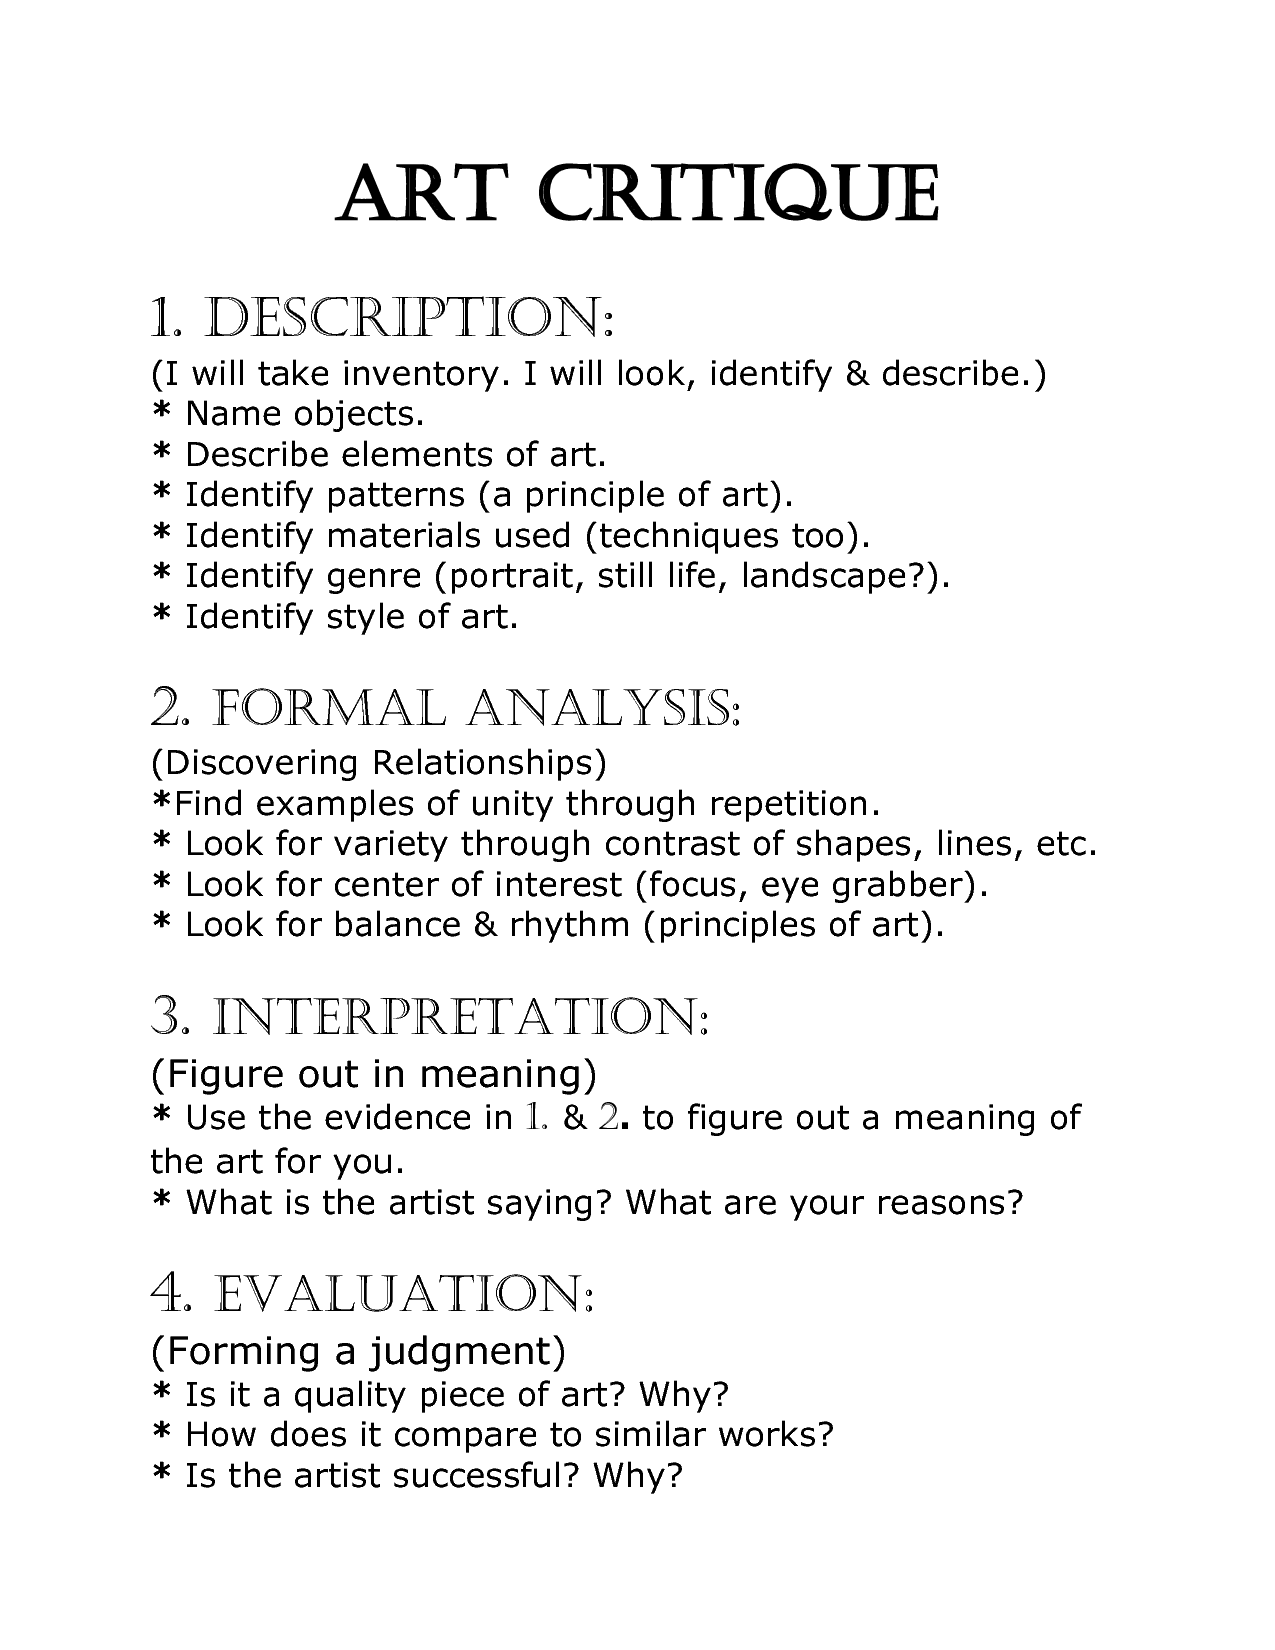 essay critiquing an art form Art critique writing is indispensible for students studying art and design this helpful article explains the main aspects of effective art critique writing.